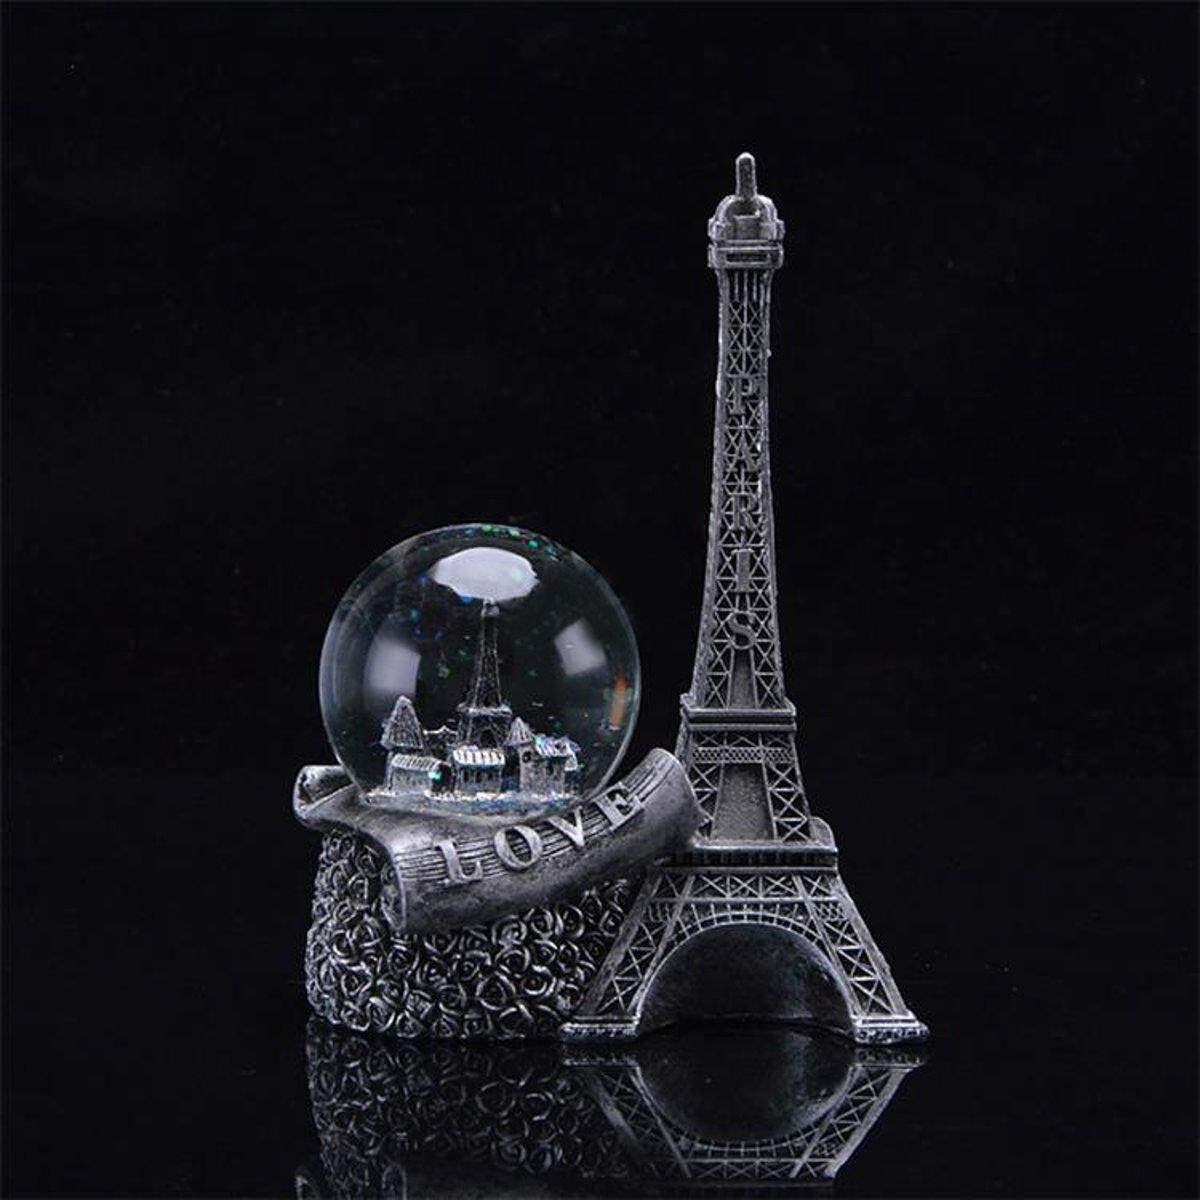 Water Snow Globe Glitter Paris Landmark Eiffel Tower Love Girl Birthday Gift